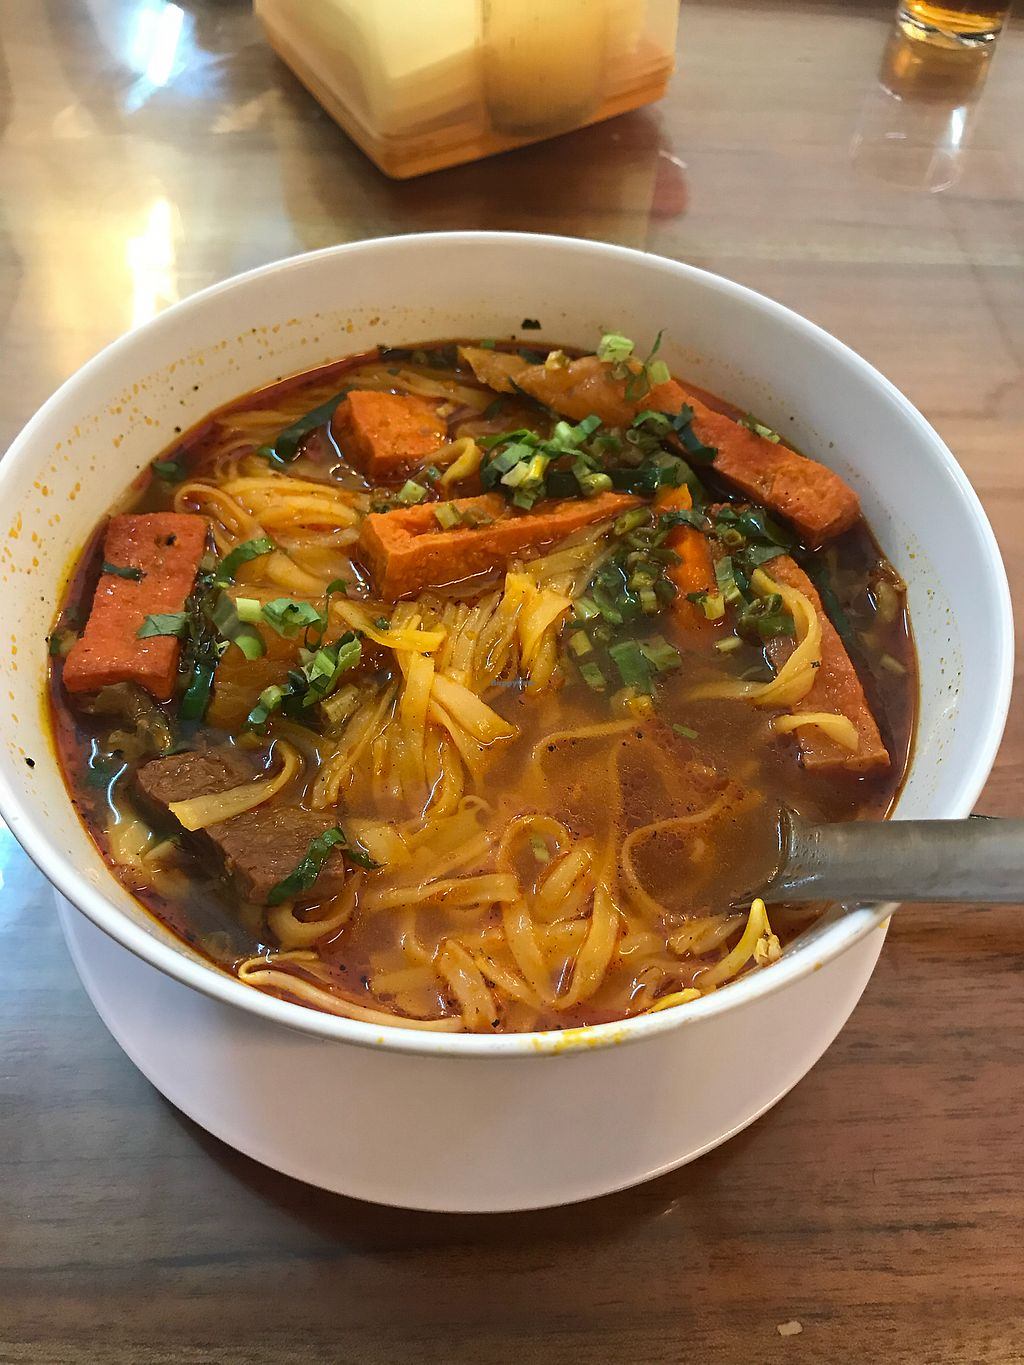 """Photo of Dai Loc  by <a href=""""/members/profile/AnnaLevshin"""">AnnaLevshin</a> <br/>Noodle beef pho  <br/> April 19, 2018  - <a href='/contact/abuse/image/60492/387980'>Report</a>"""